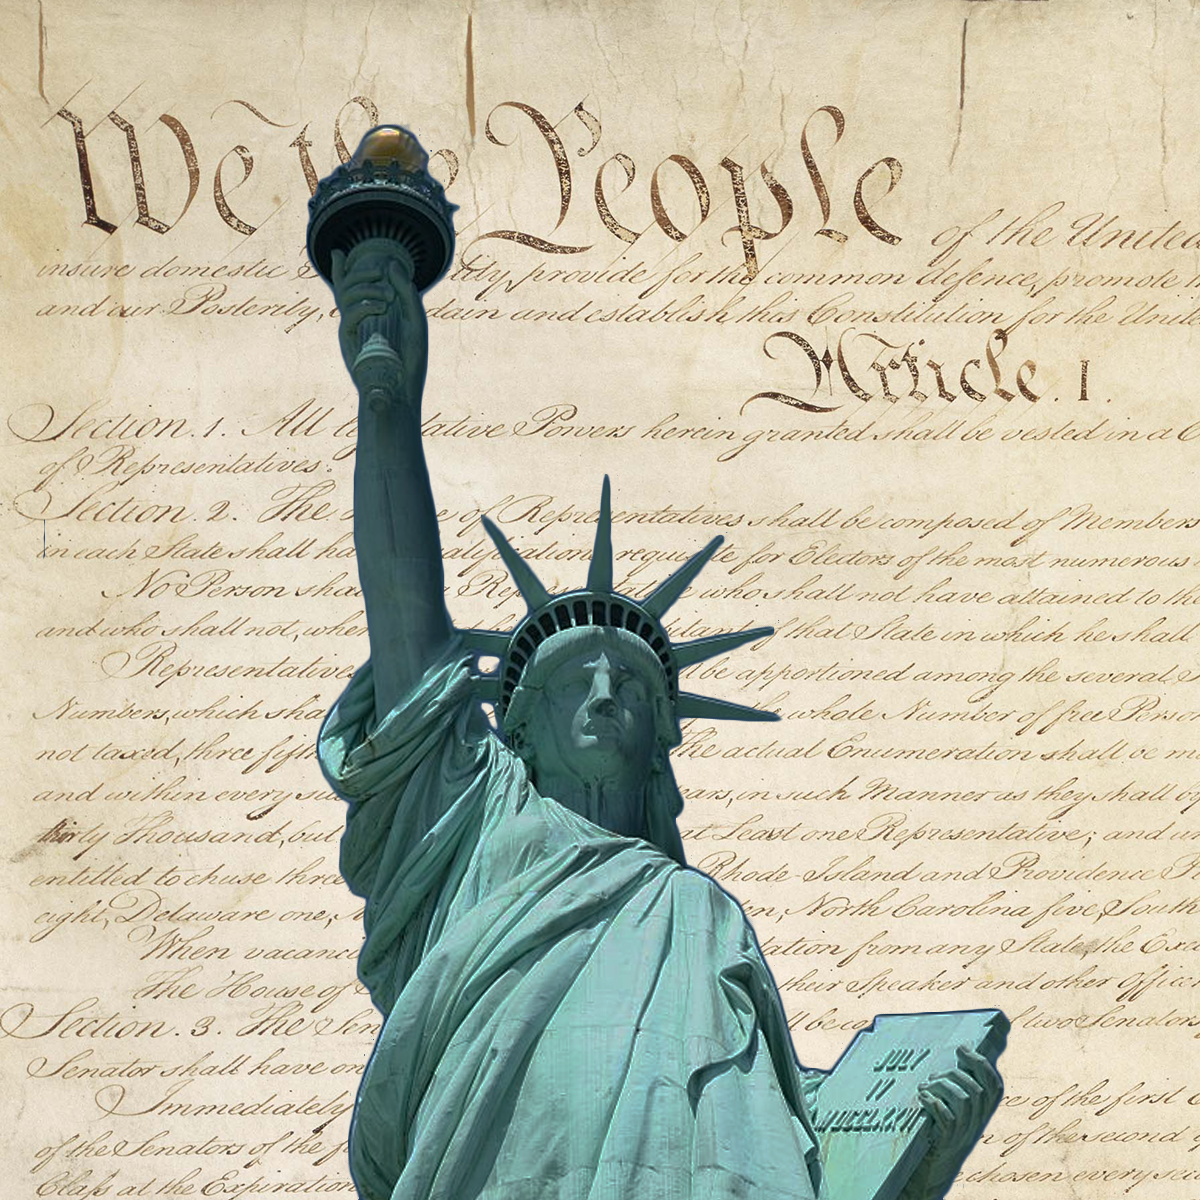 Chemerinsky on Constitutional Law - Individual Rights and Liberties